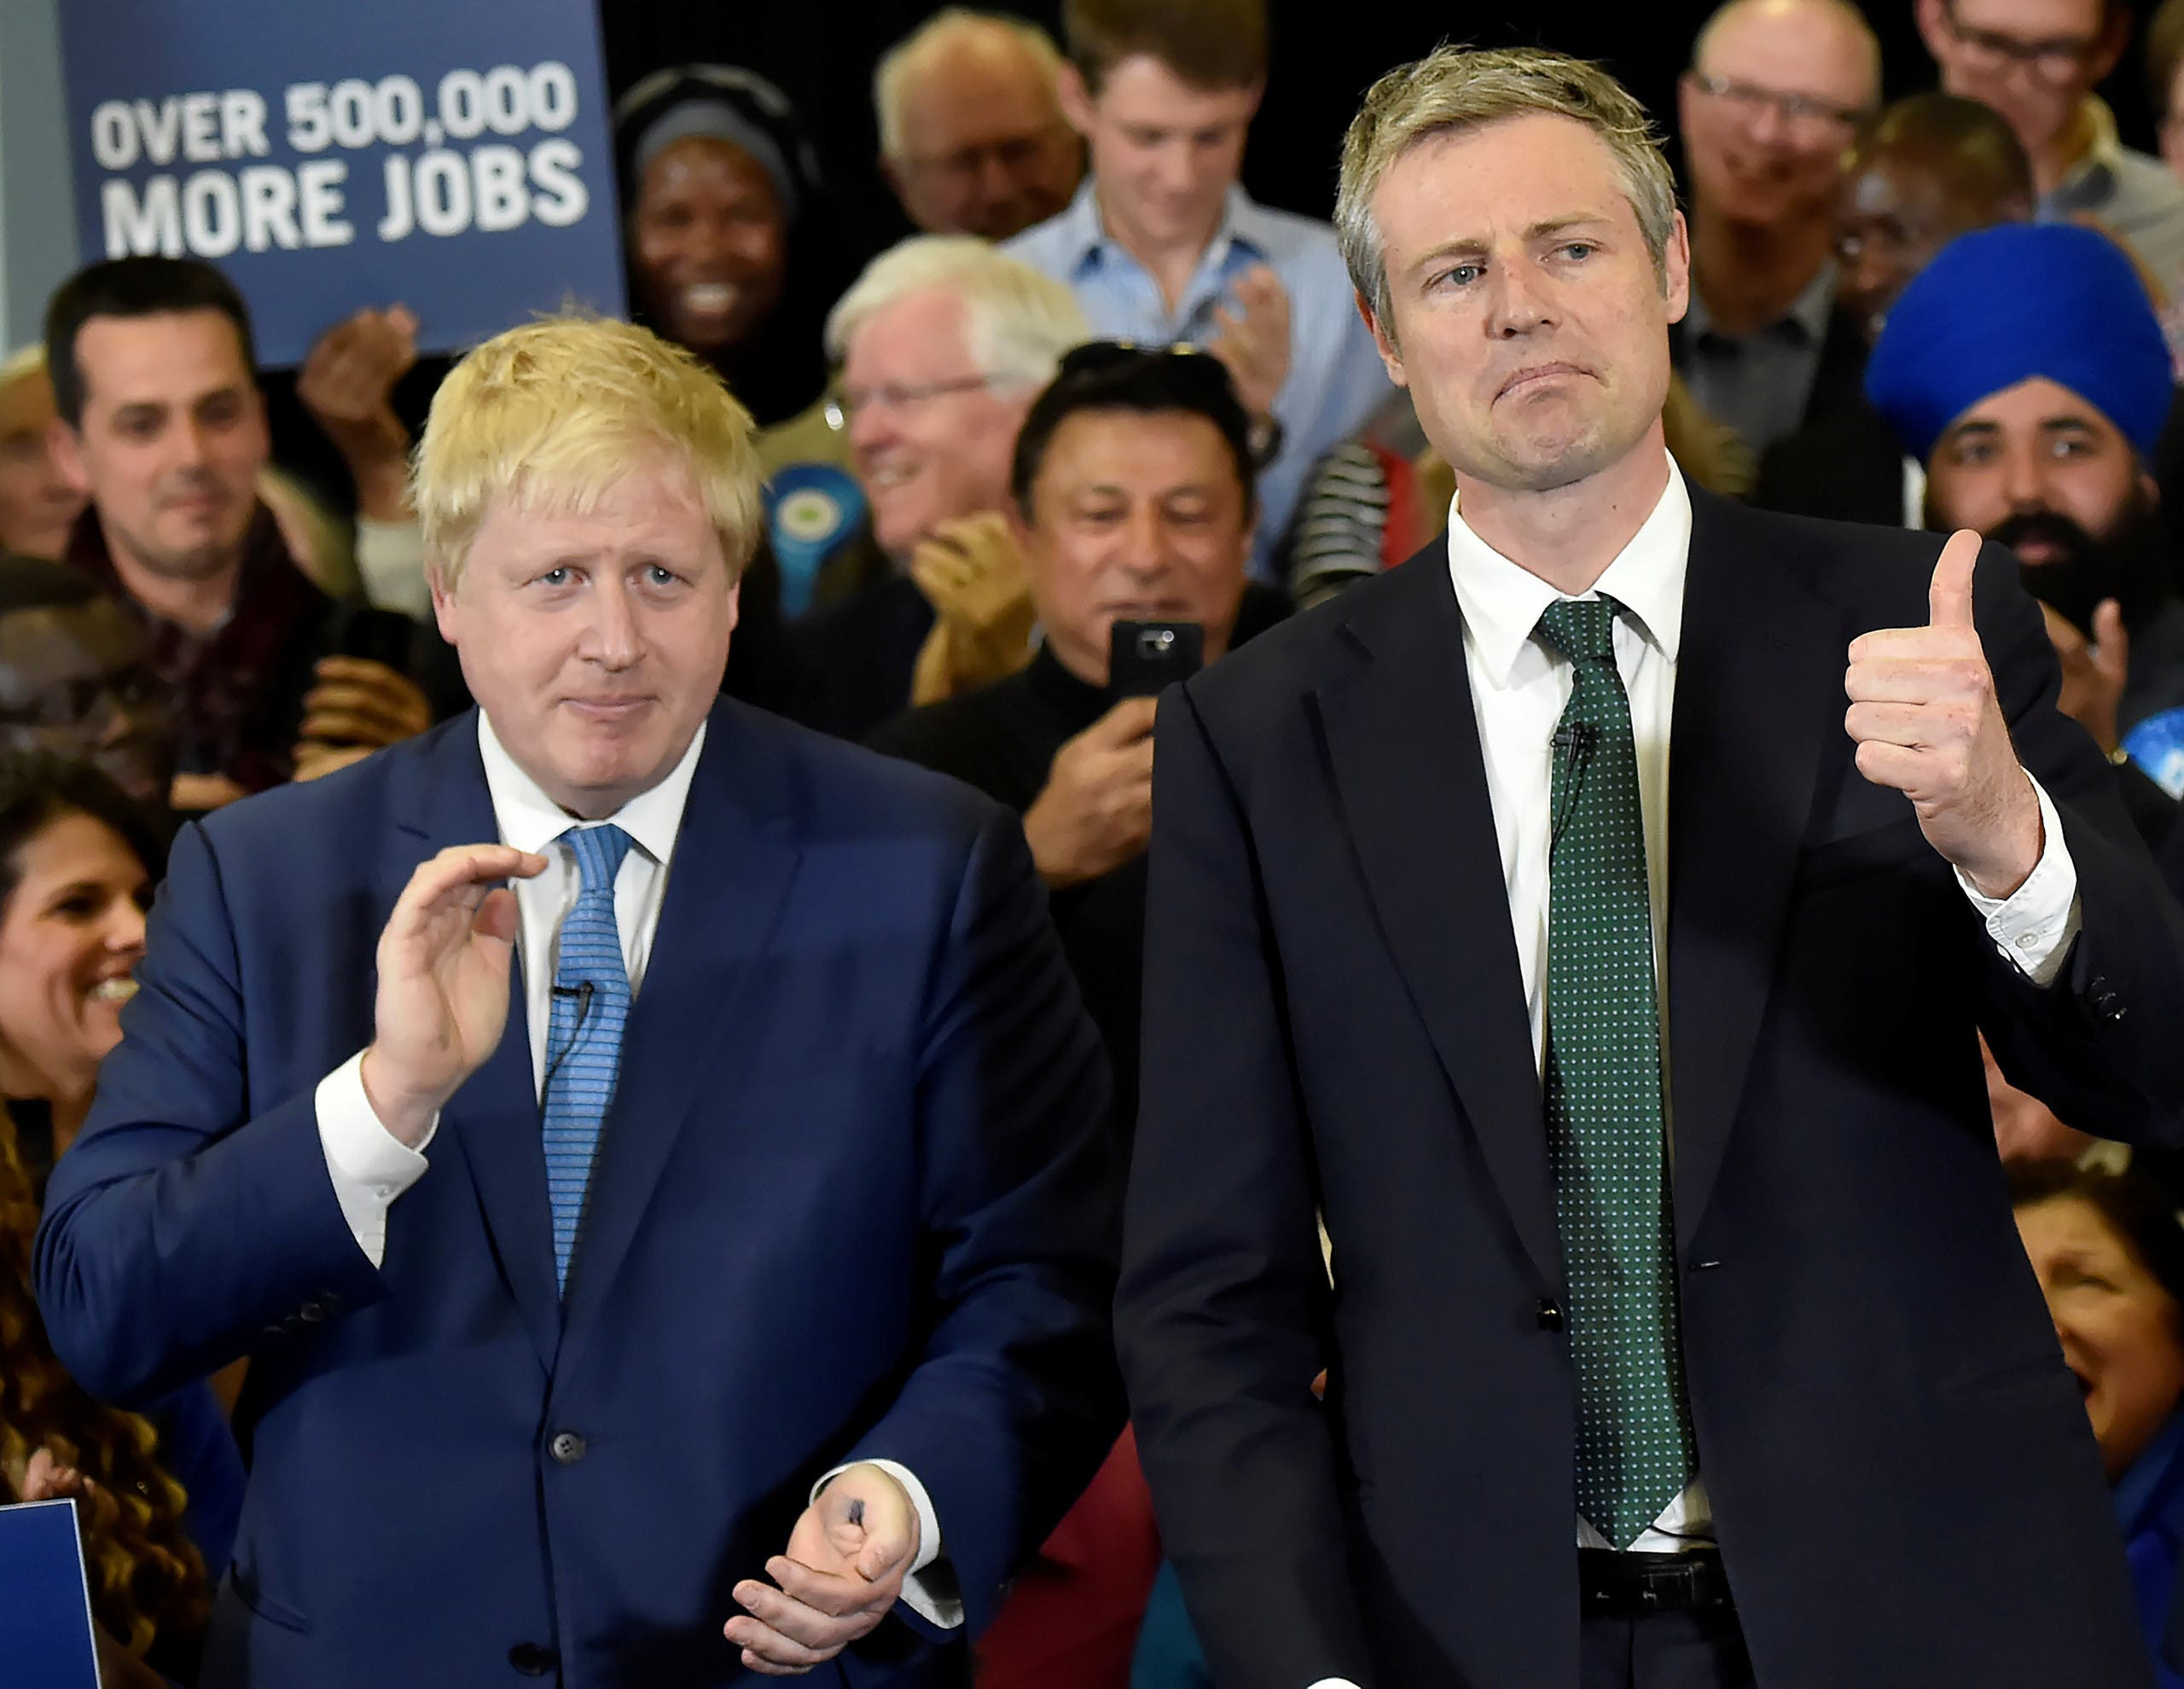 London Mayor Boris Johnson and Conservative Party candidate for Mayor of London Zac Goldsmith (R) speak during a campaign event for the London Mayoral election in London, Britain May 3, 2016. (Reuters)